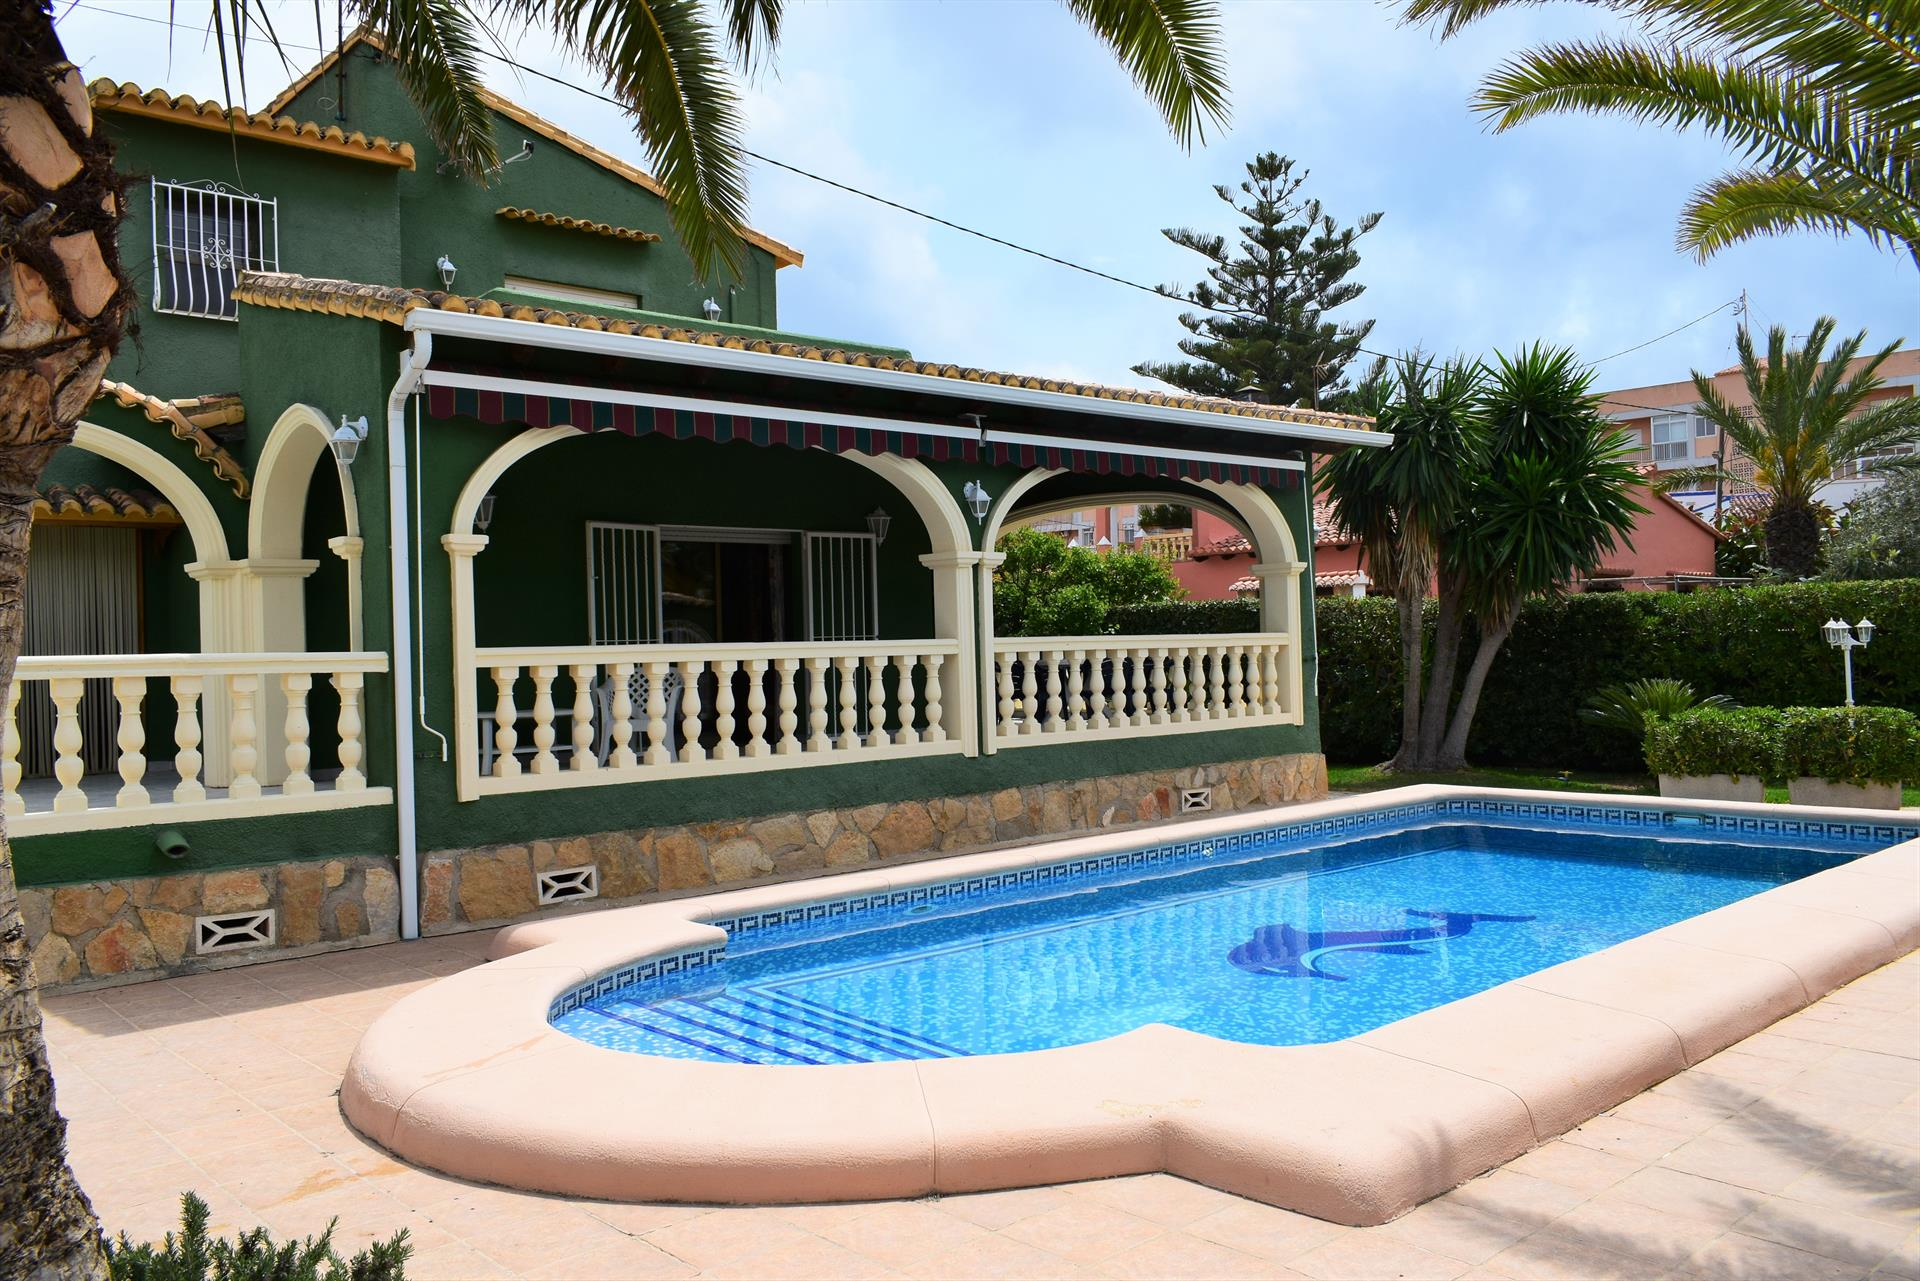 CH1055 Zona Deveses 8 personas piscina, Classic and nice holiday house  with private pool in Denia, on the Costa Blanca, Spain for 8 persons.....